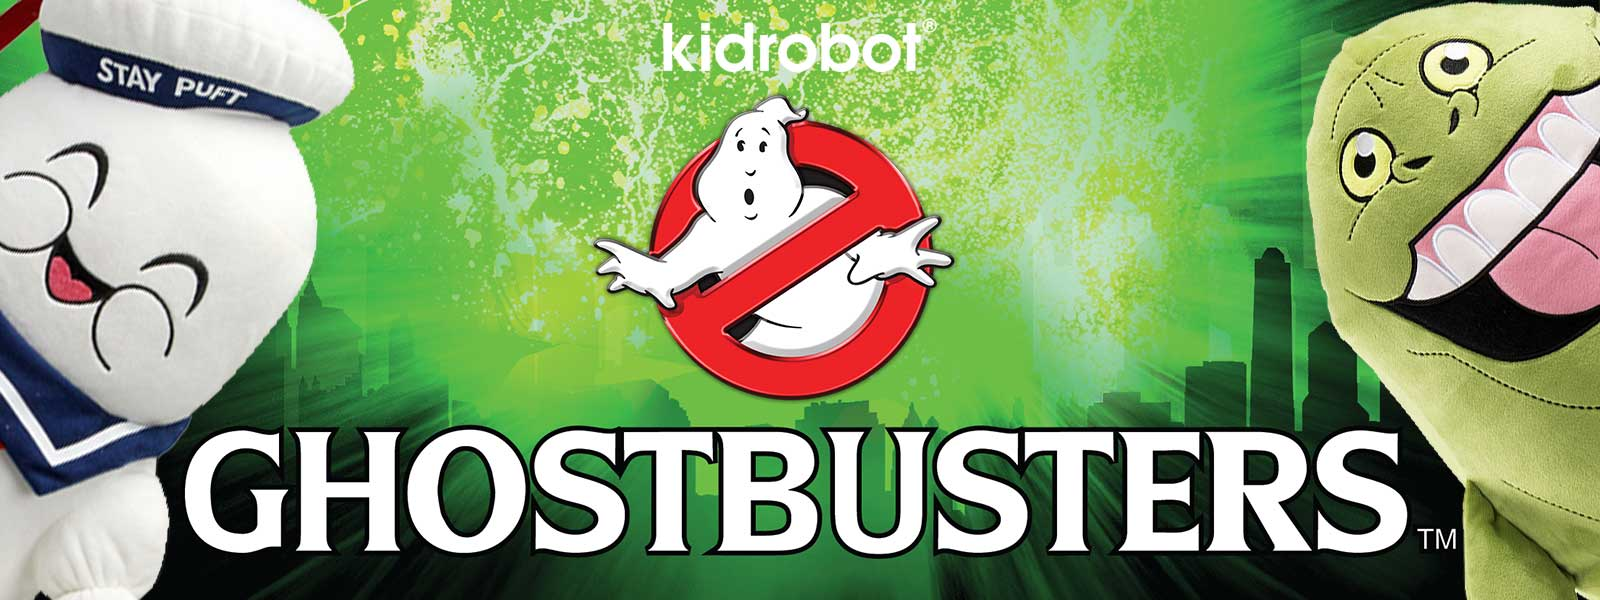 Ghostbusters x Kidrobot Plush Toys & Collectibles - Kidrobot.com